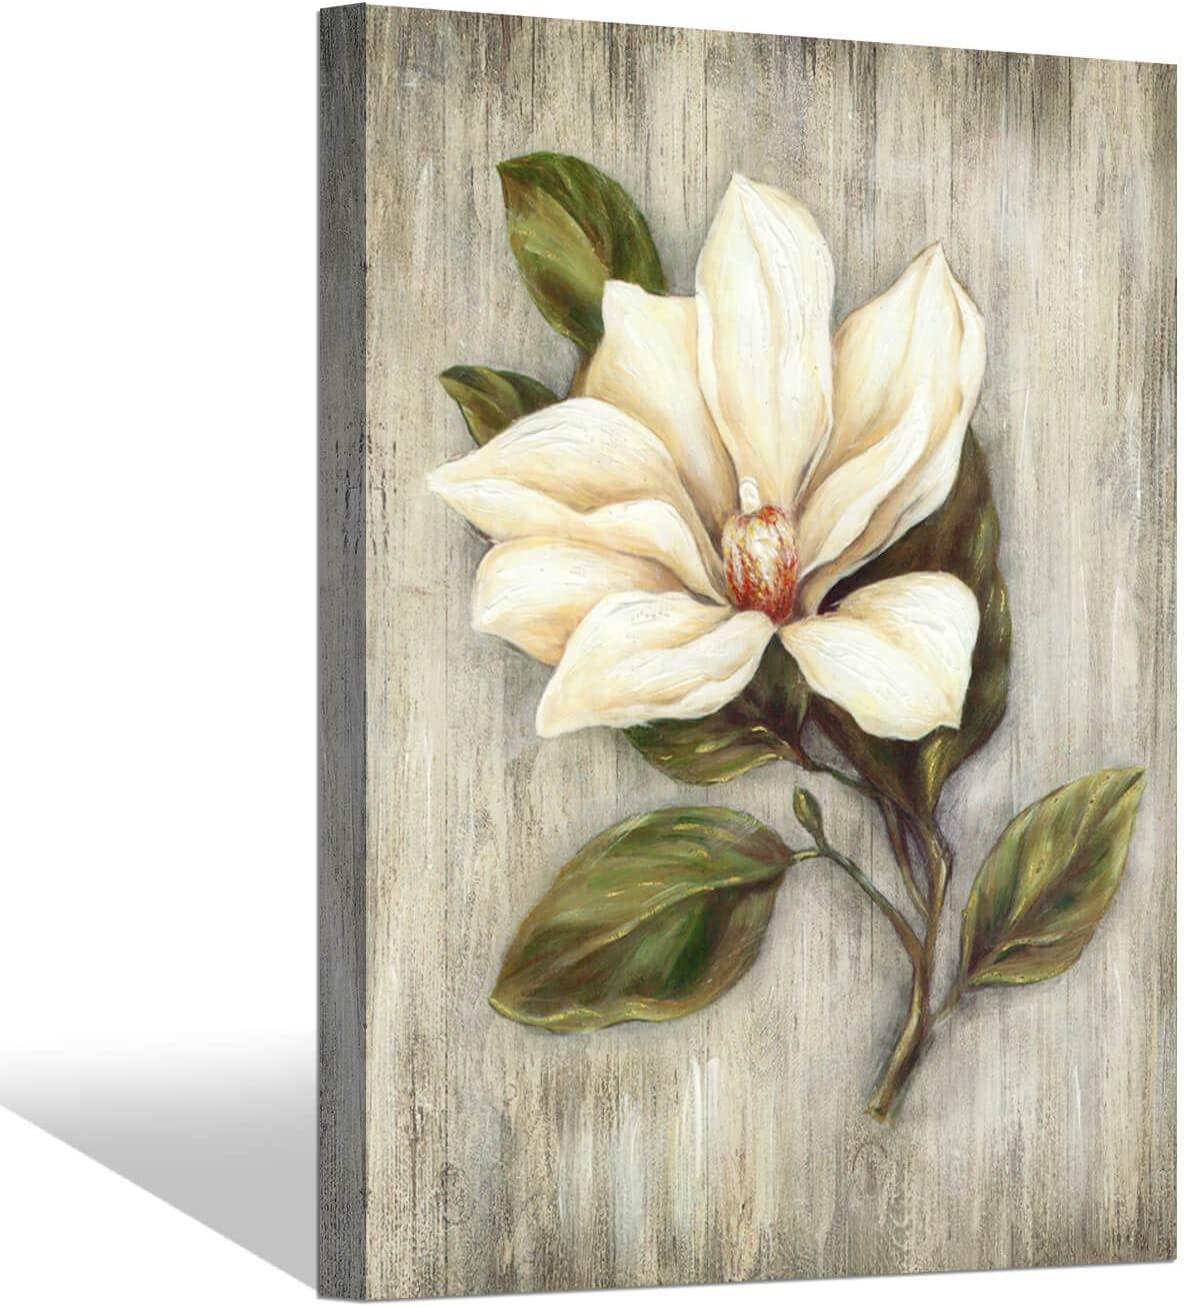 Flower Artwork Floral Canvas Painting: White Magnolia Picture Prints Wall Art for Bedroom ( 24'' x 18'' x 1 Panel )